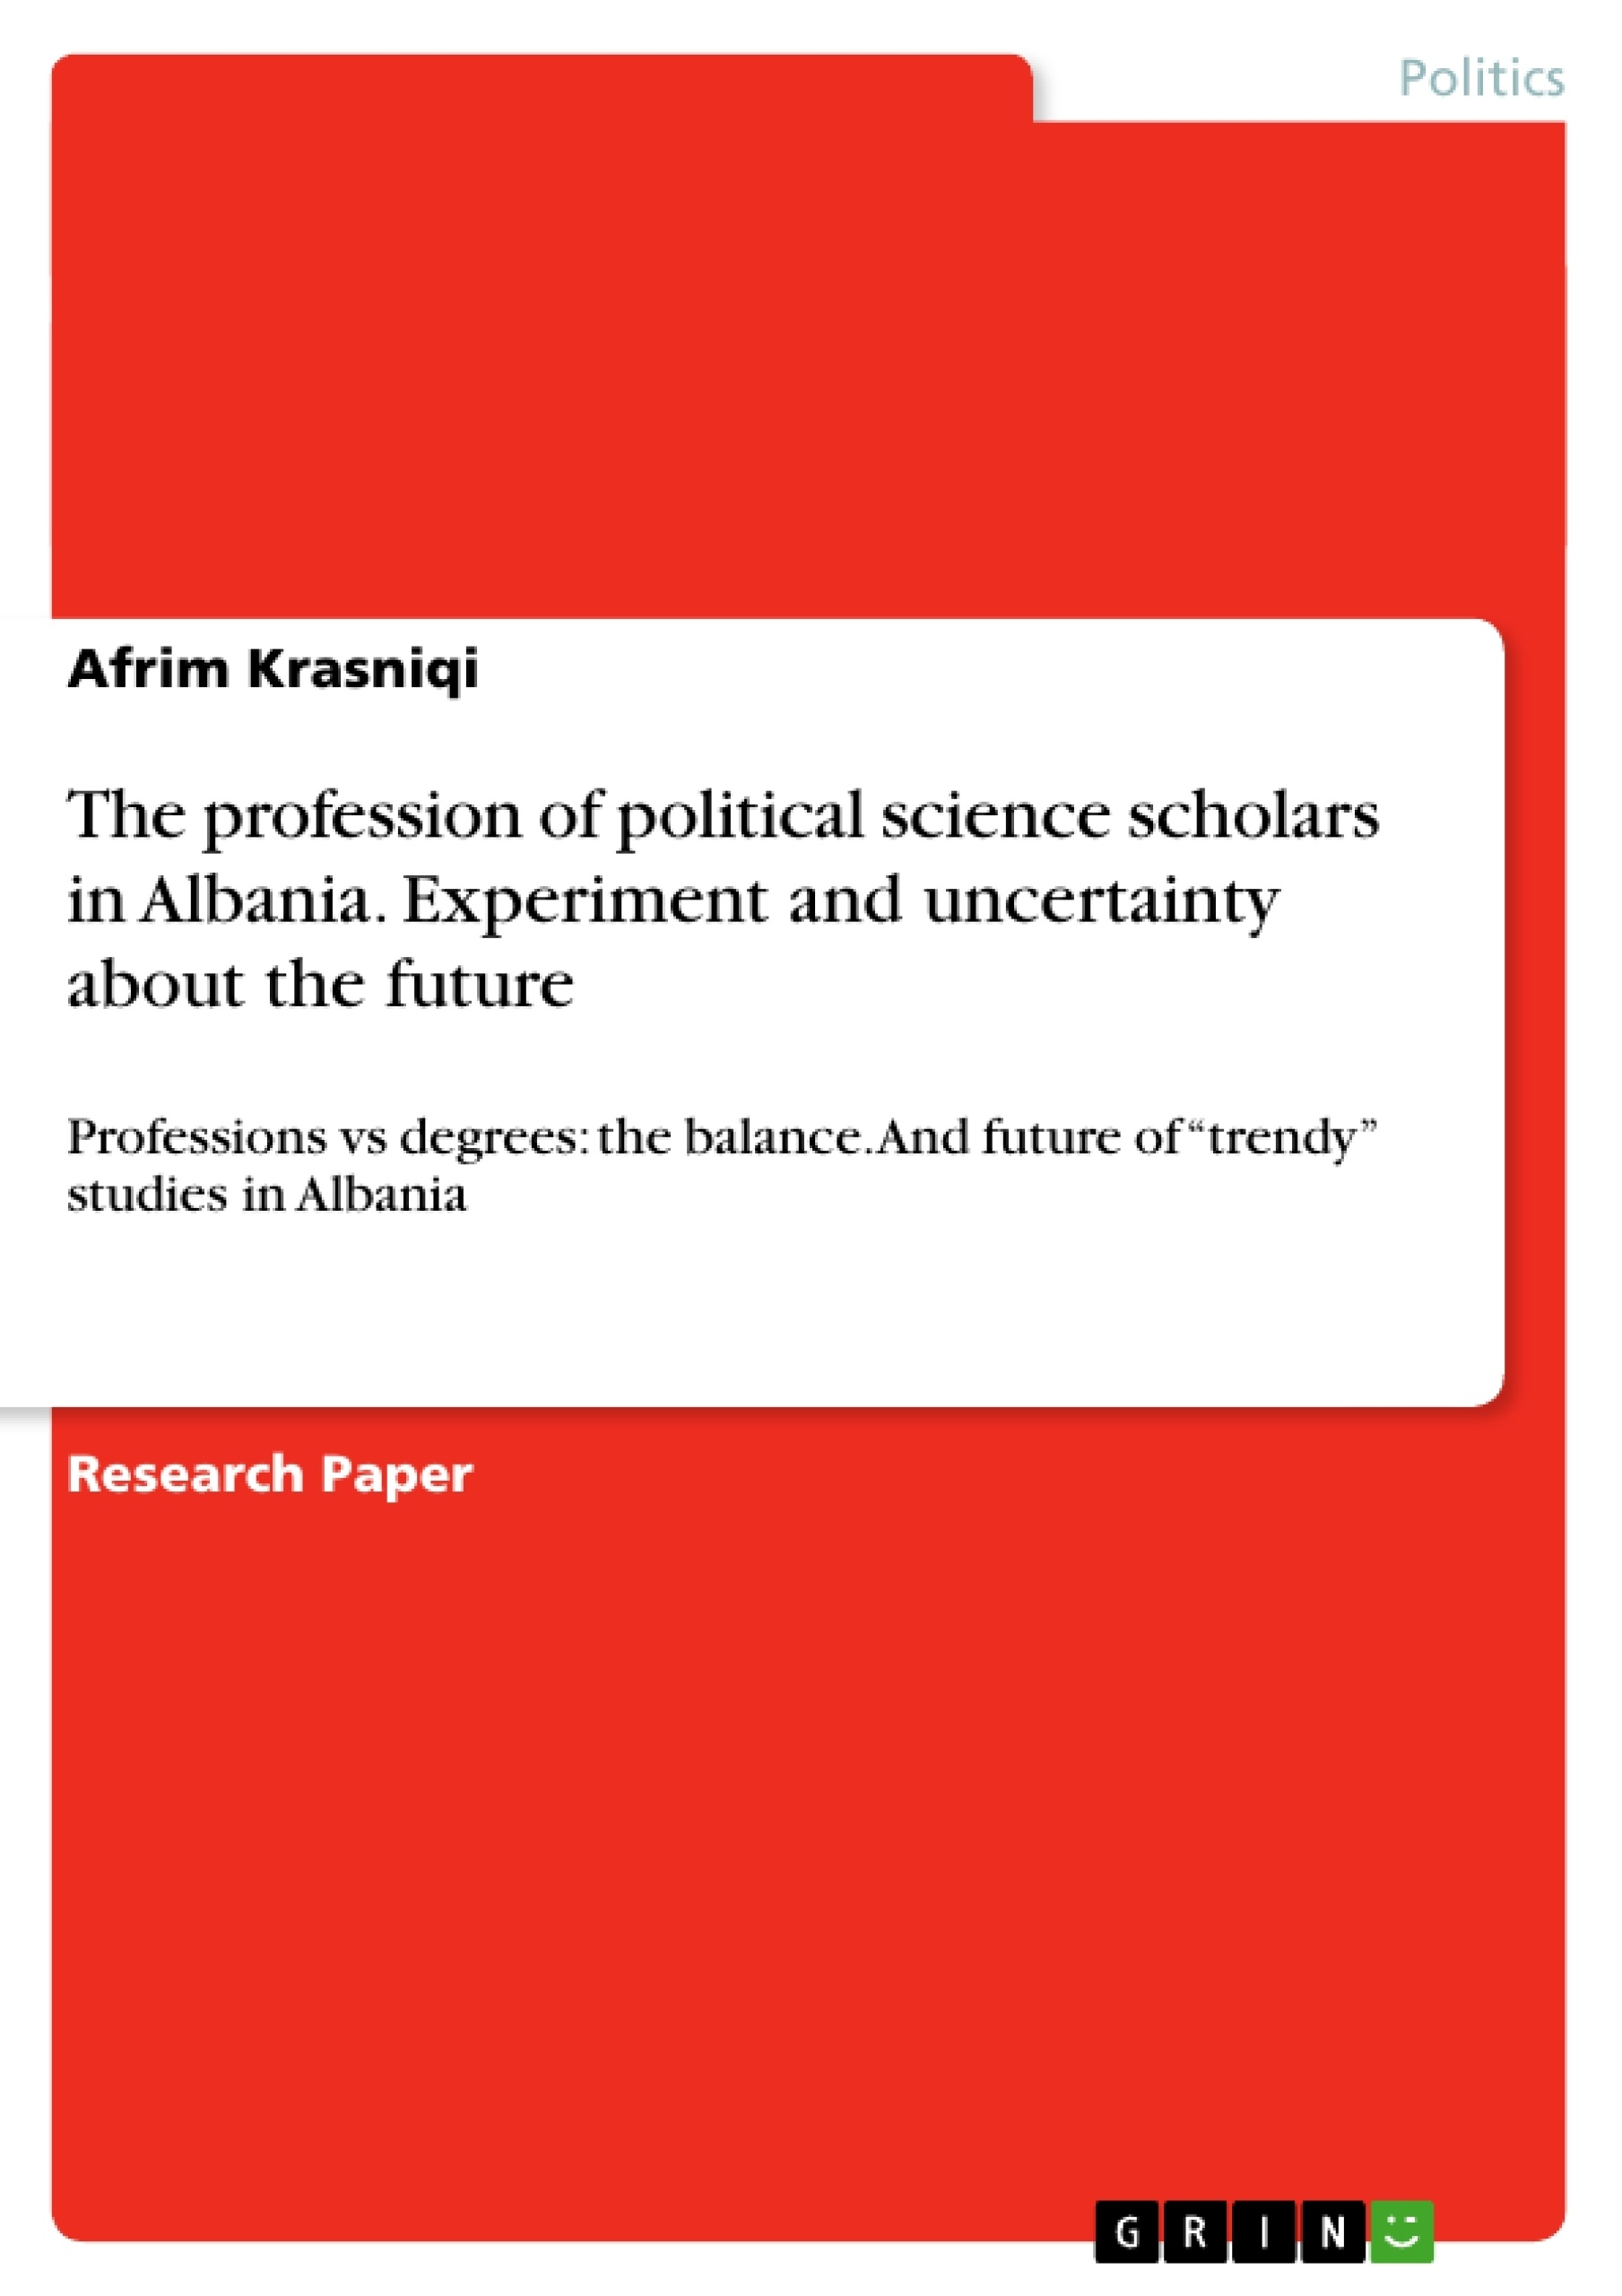 Title: The profession of political science scholars in Albania. Experiment and uncertainty about the future